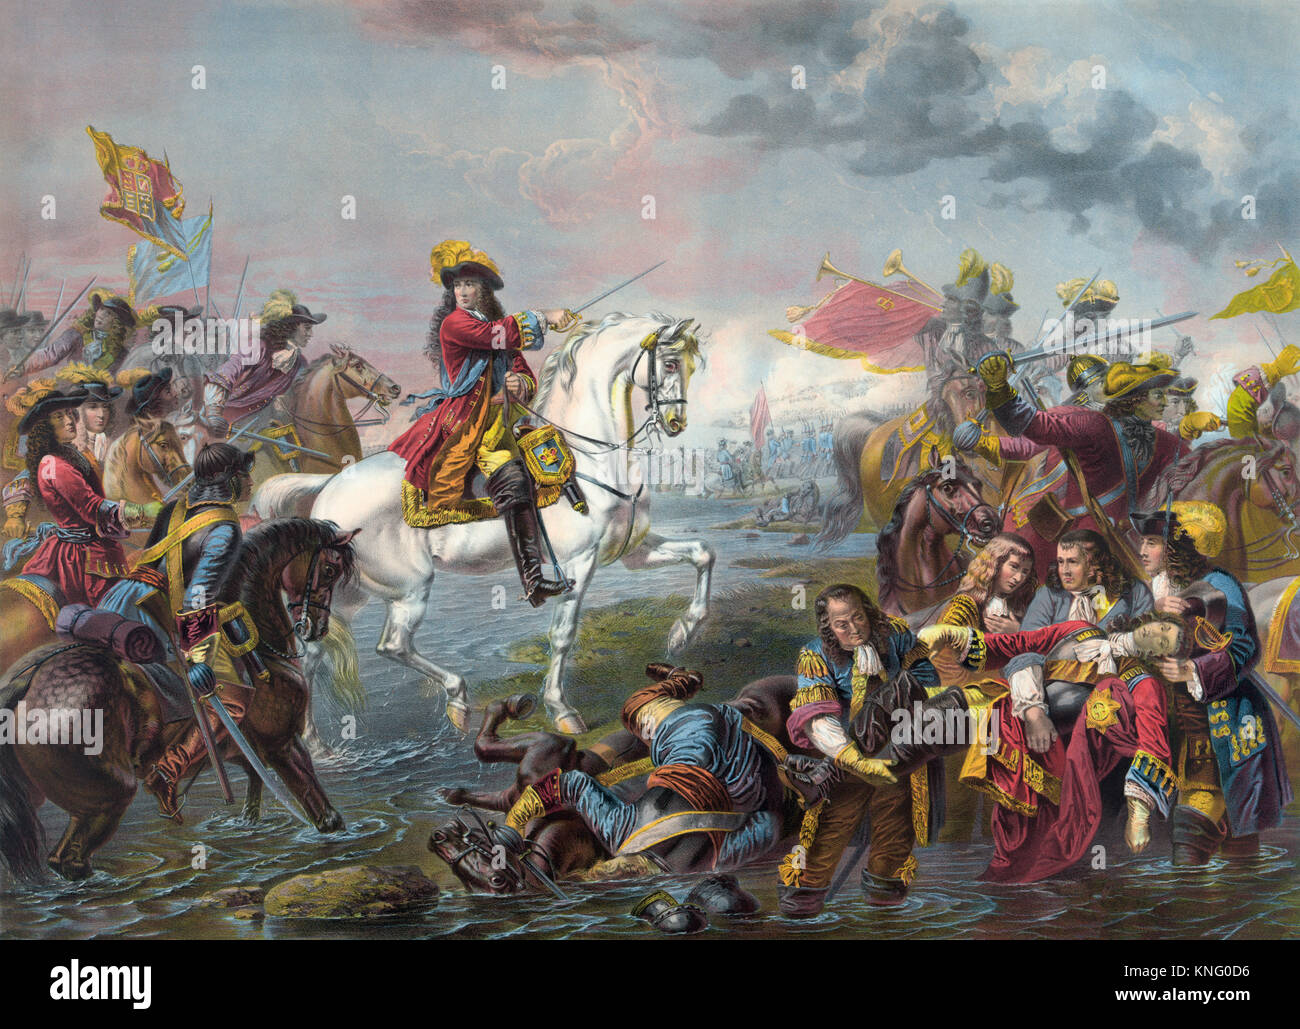 Battle of the Boyne, which took place in 1690 near Drogheda, Ireland. The